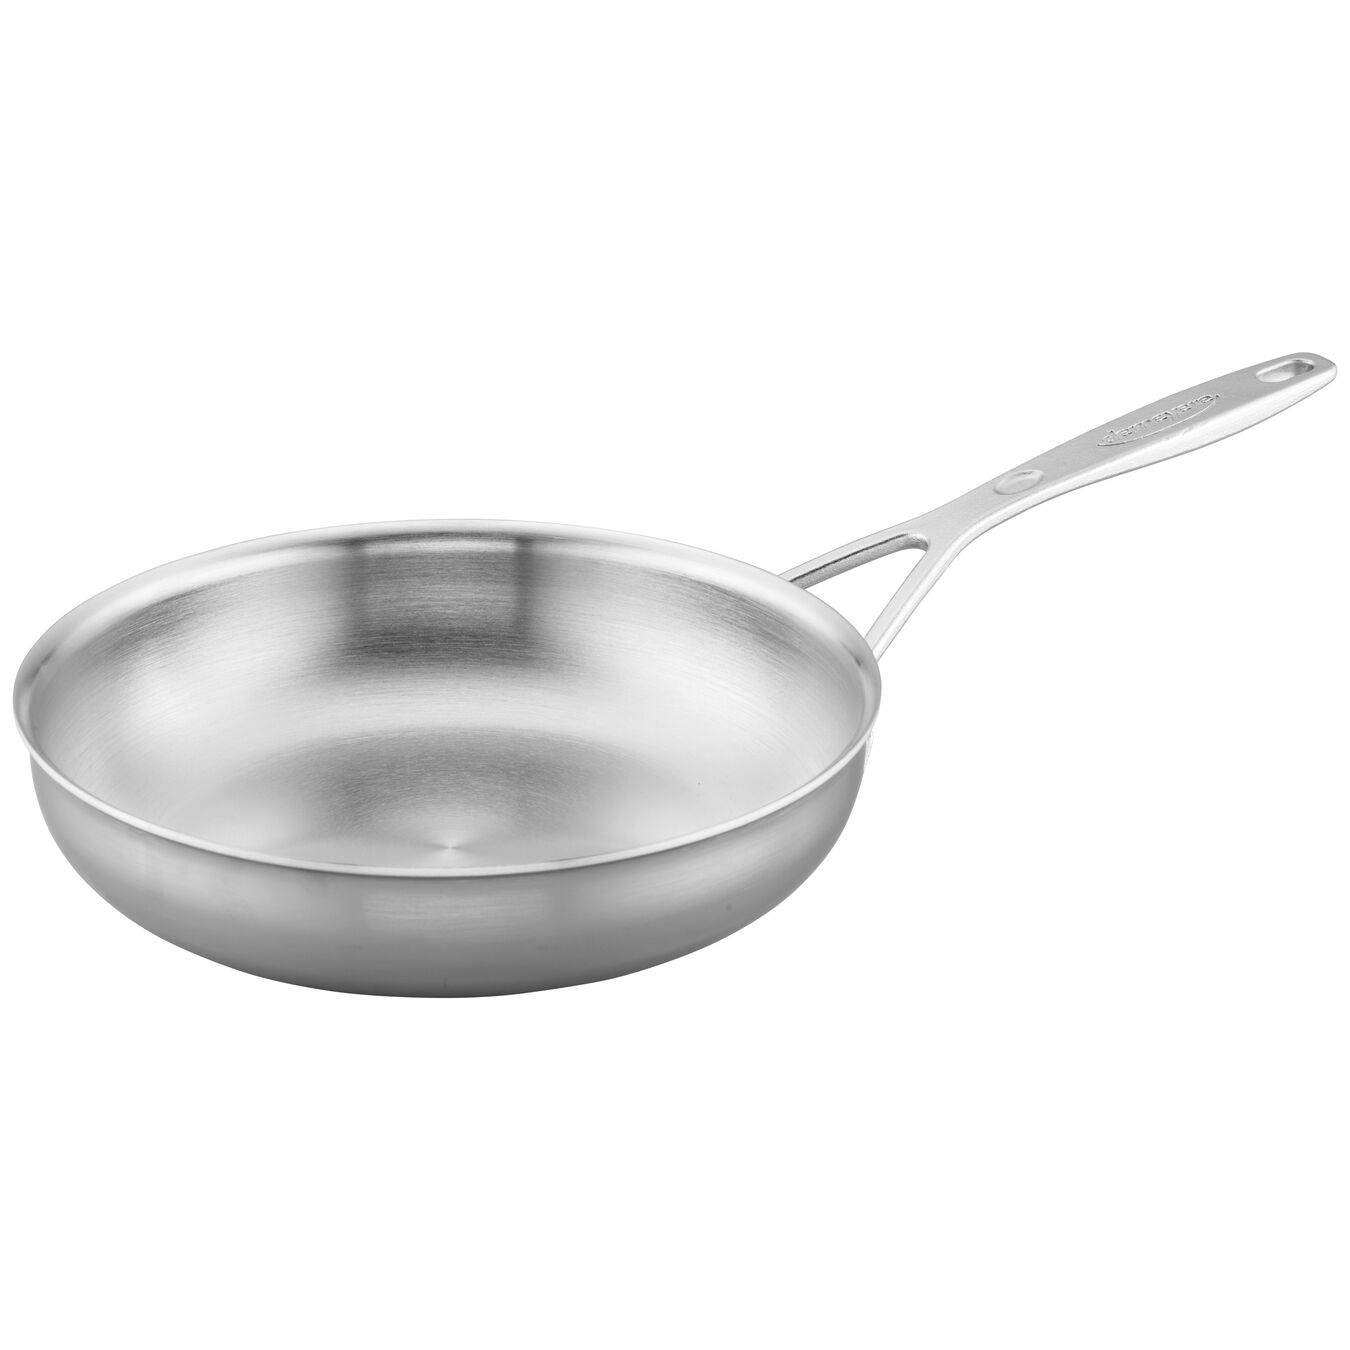 9.5-inch Stainless Steel Fry Pan,,large 3